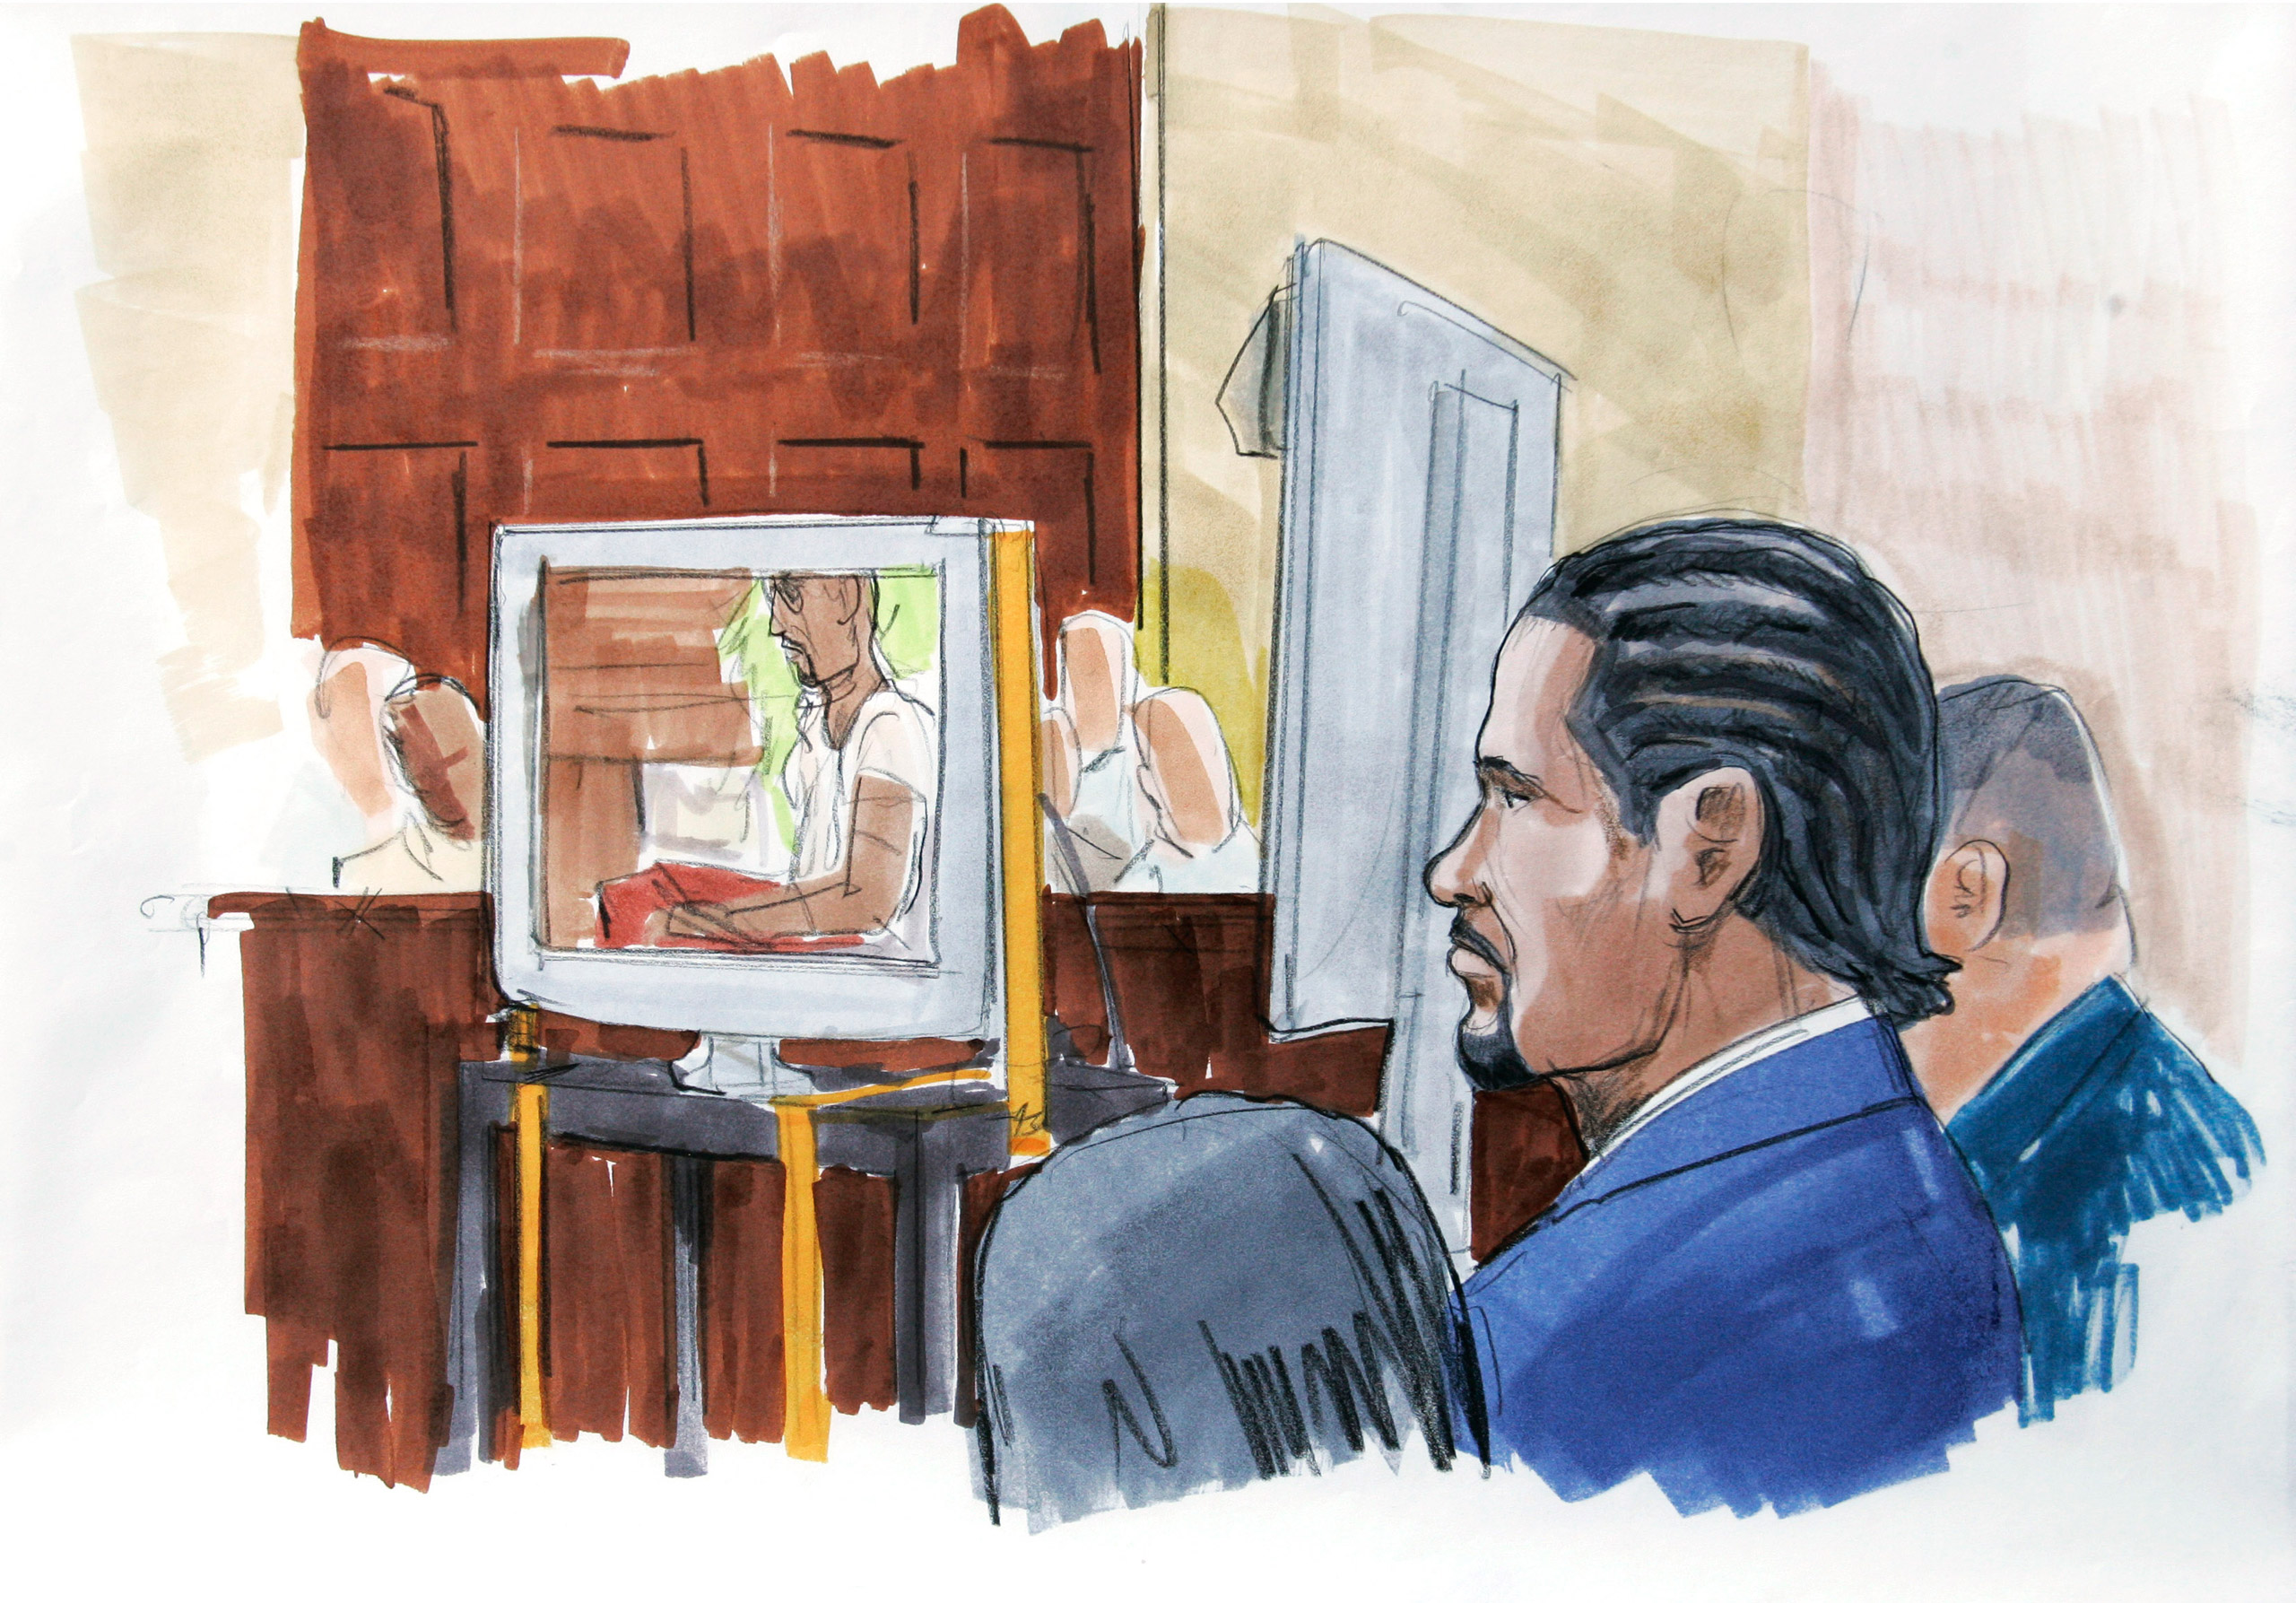 R. Kelly watches in court as prosecutors played the sex tape at the center of his child pornography trial in open court in Chicago on May 20, 2008. Kelly was found not guilty of all counts.